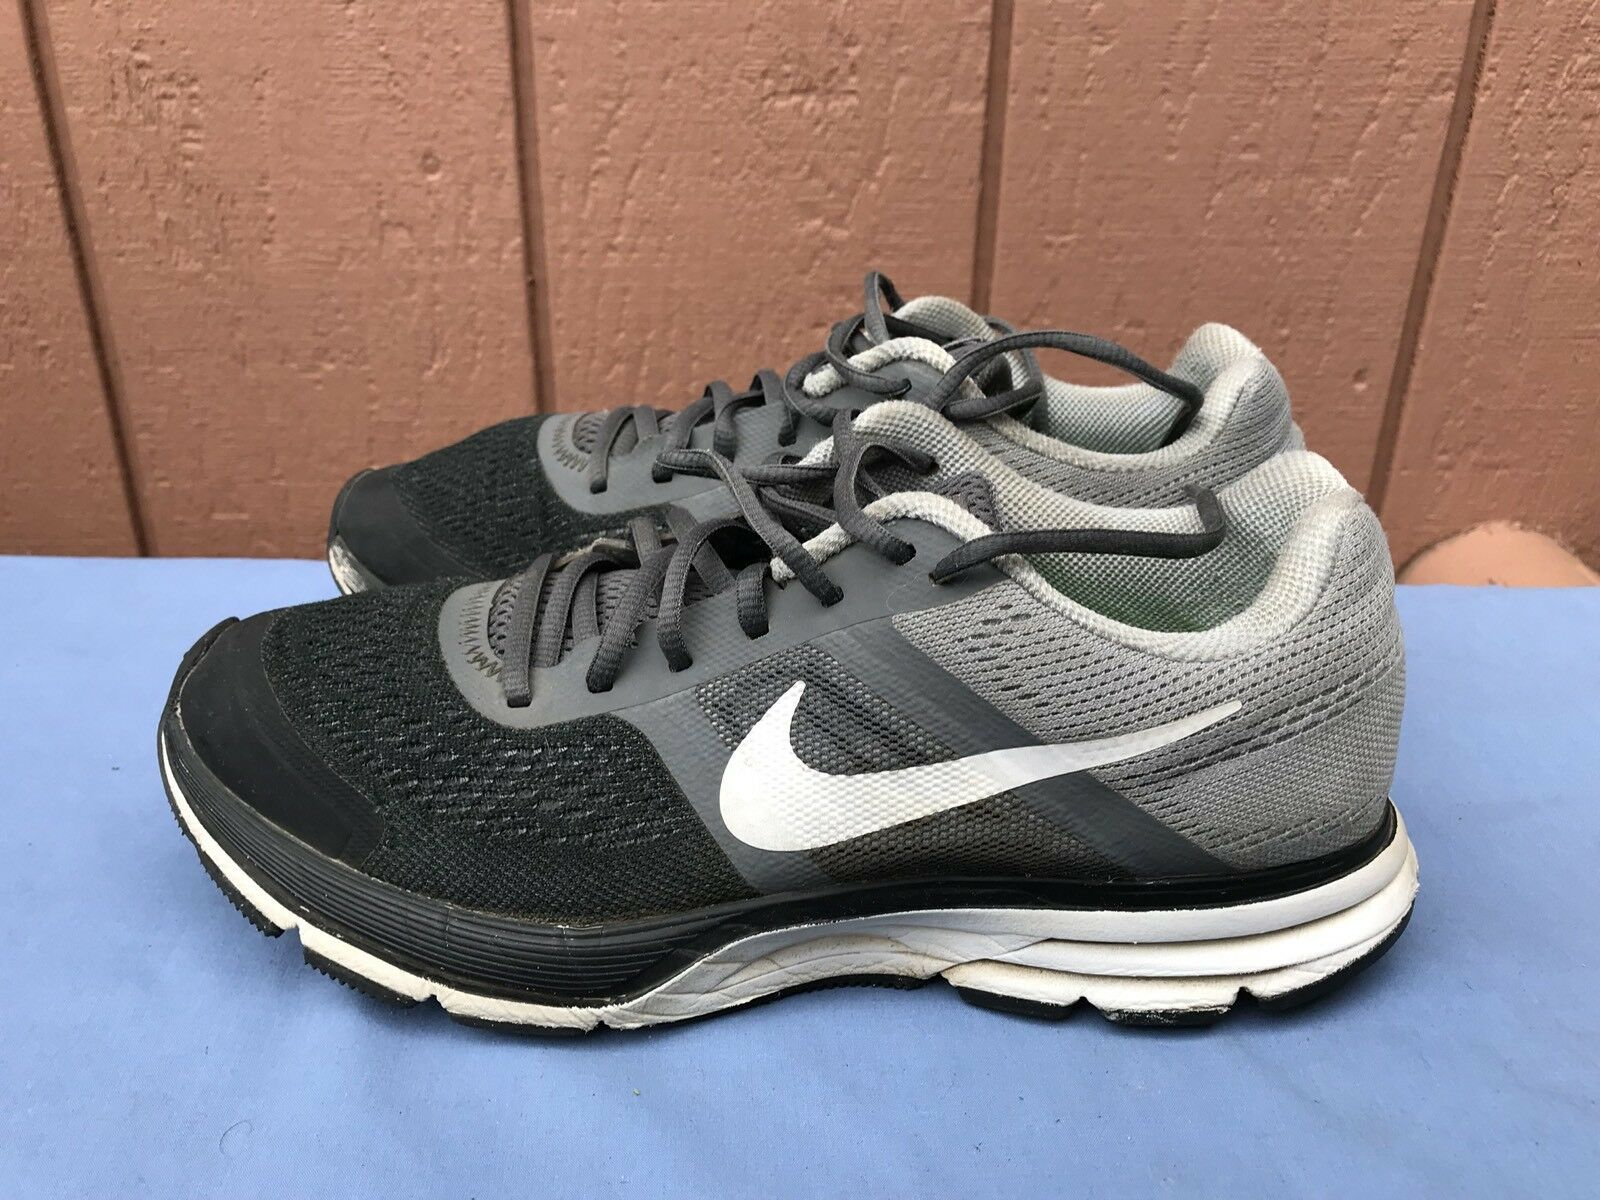 RARE AIR Nike ZOOM PEGASUS+ 30 Womens US 9.5 Price reduction New shoes for men and women, limited time discount